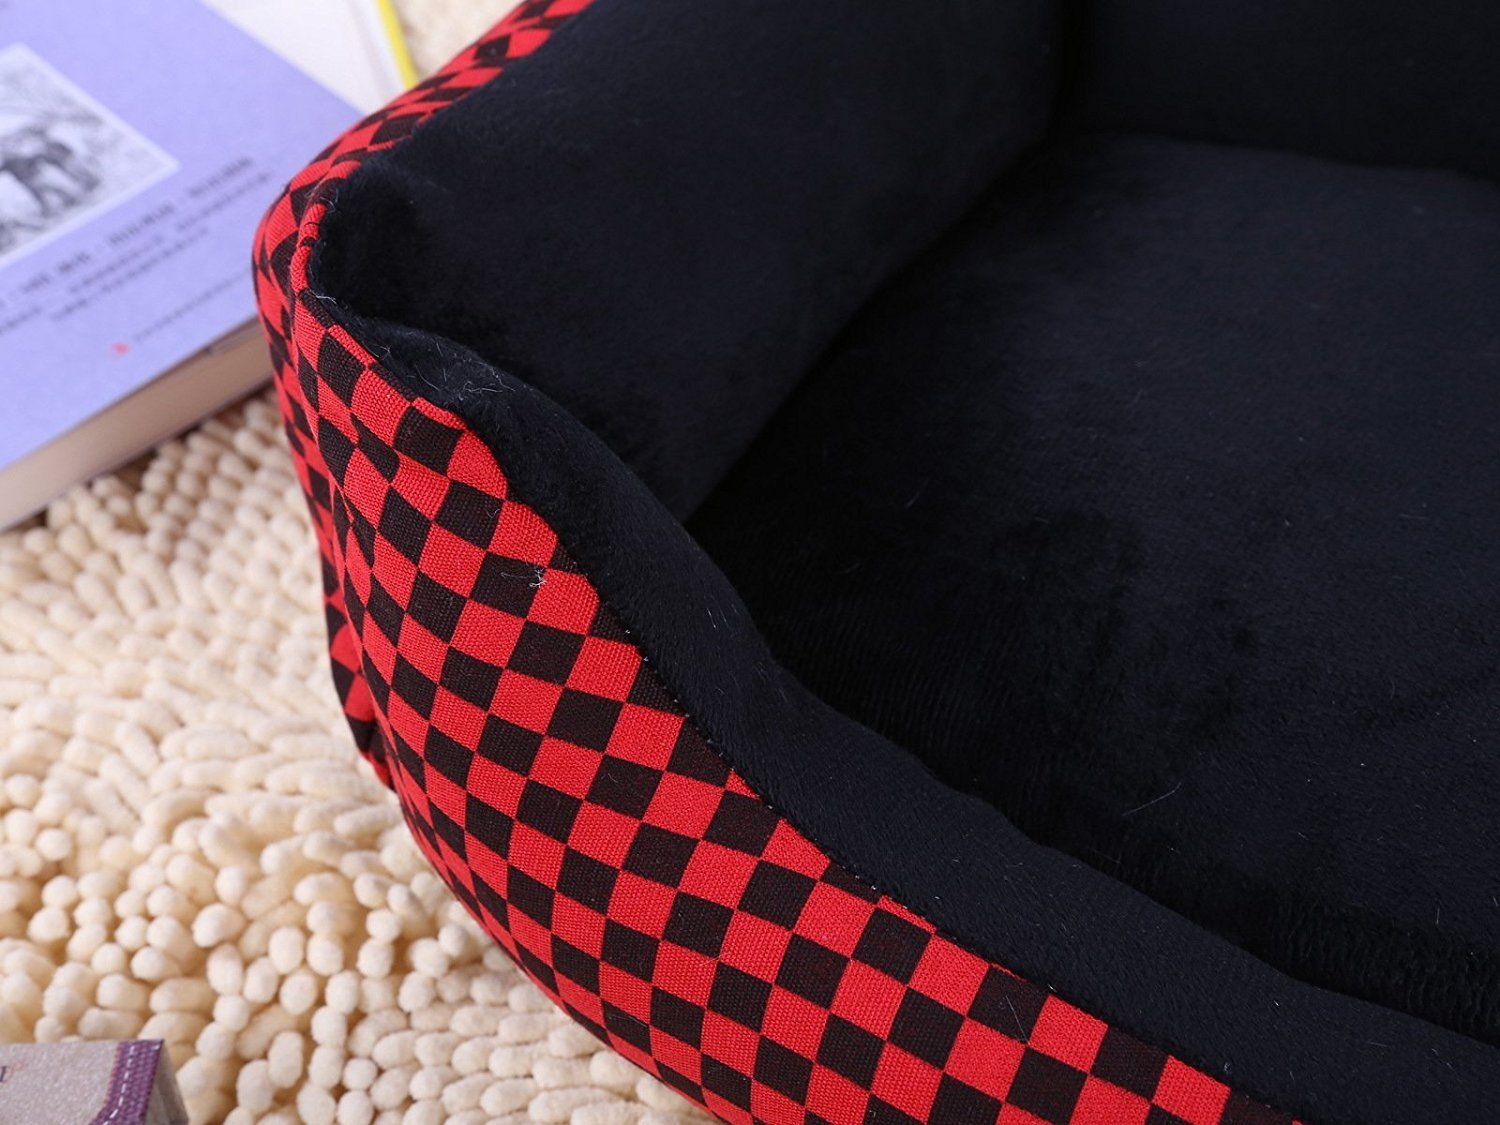 Amazon.com : YOIOY Comfortable Winter Pet Cushion Sofa Kennel Waterproof Dog Pet Cat Bed Mat Cushion Washable Ultra-Soft Plush Fabric Soft Cover Black with ...